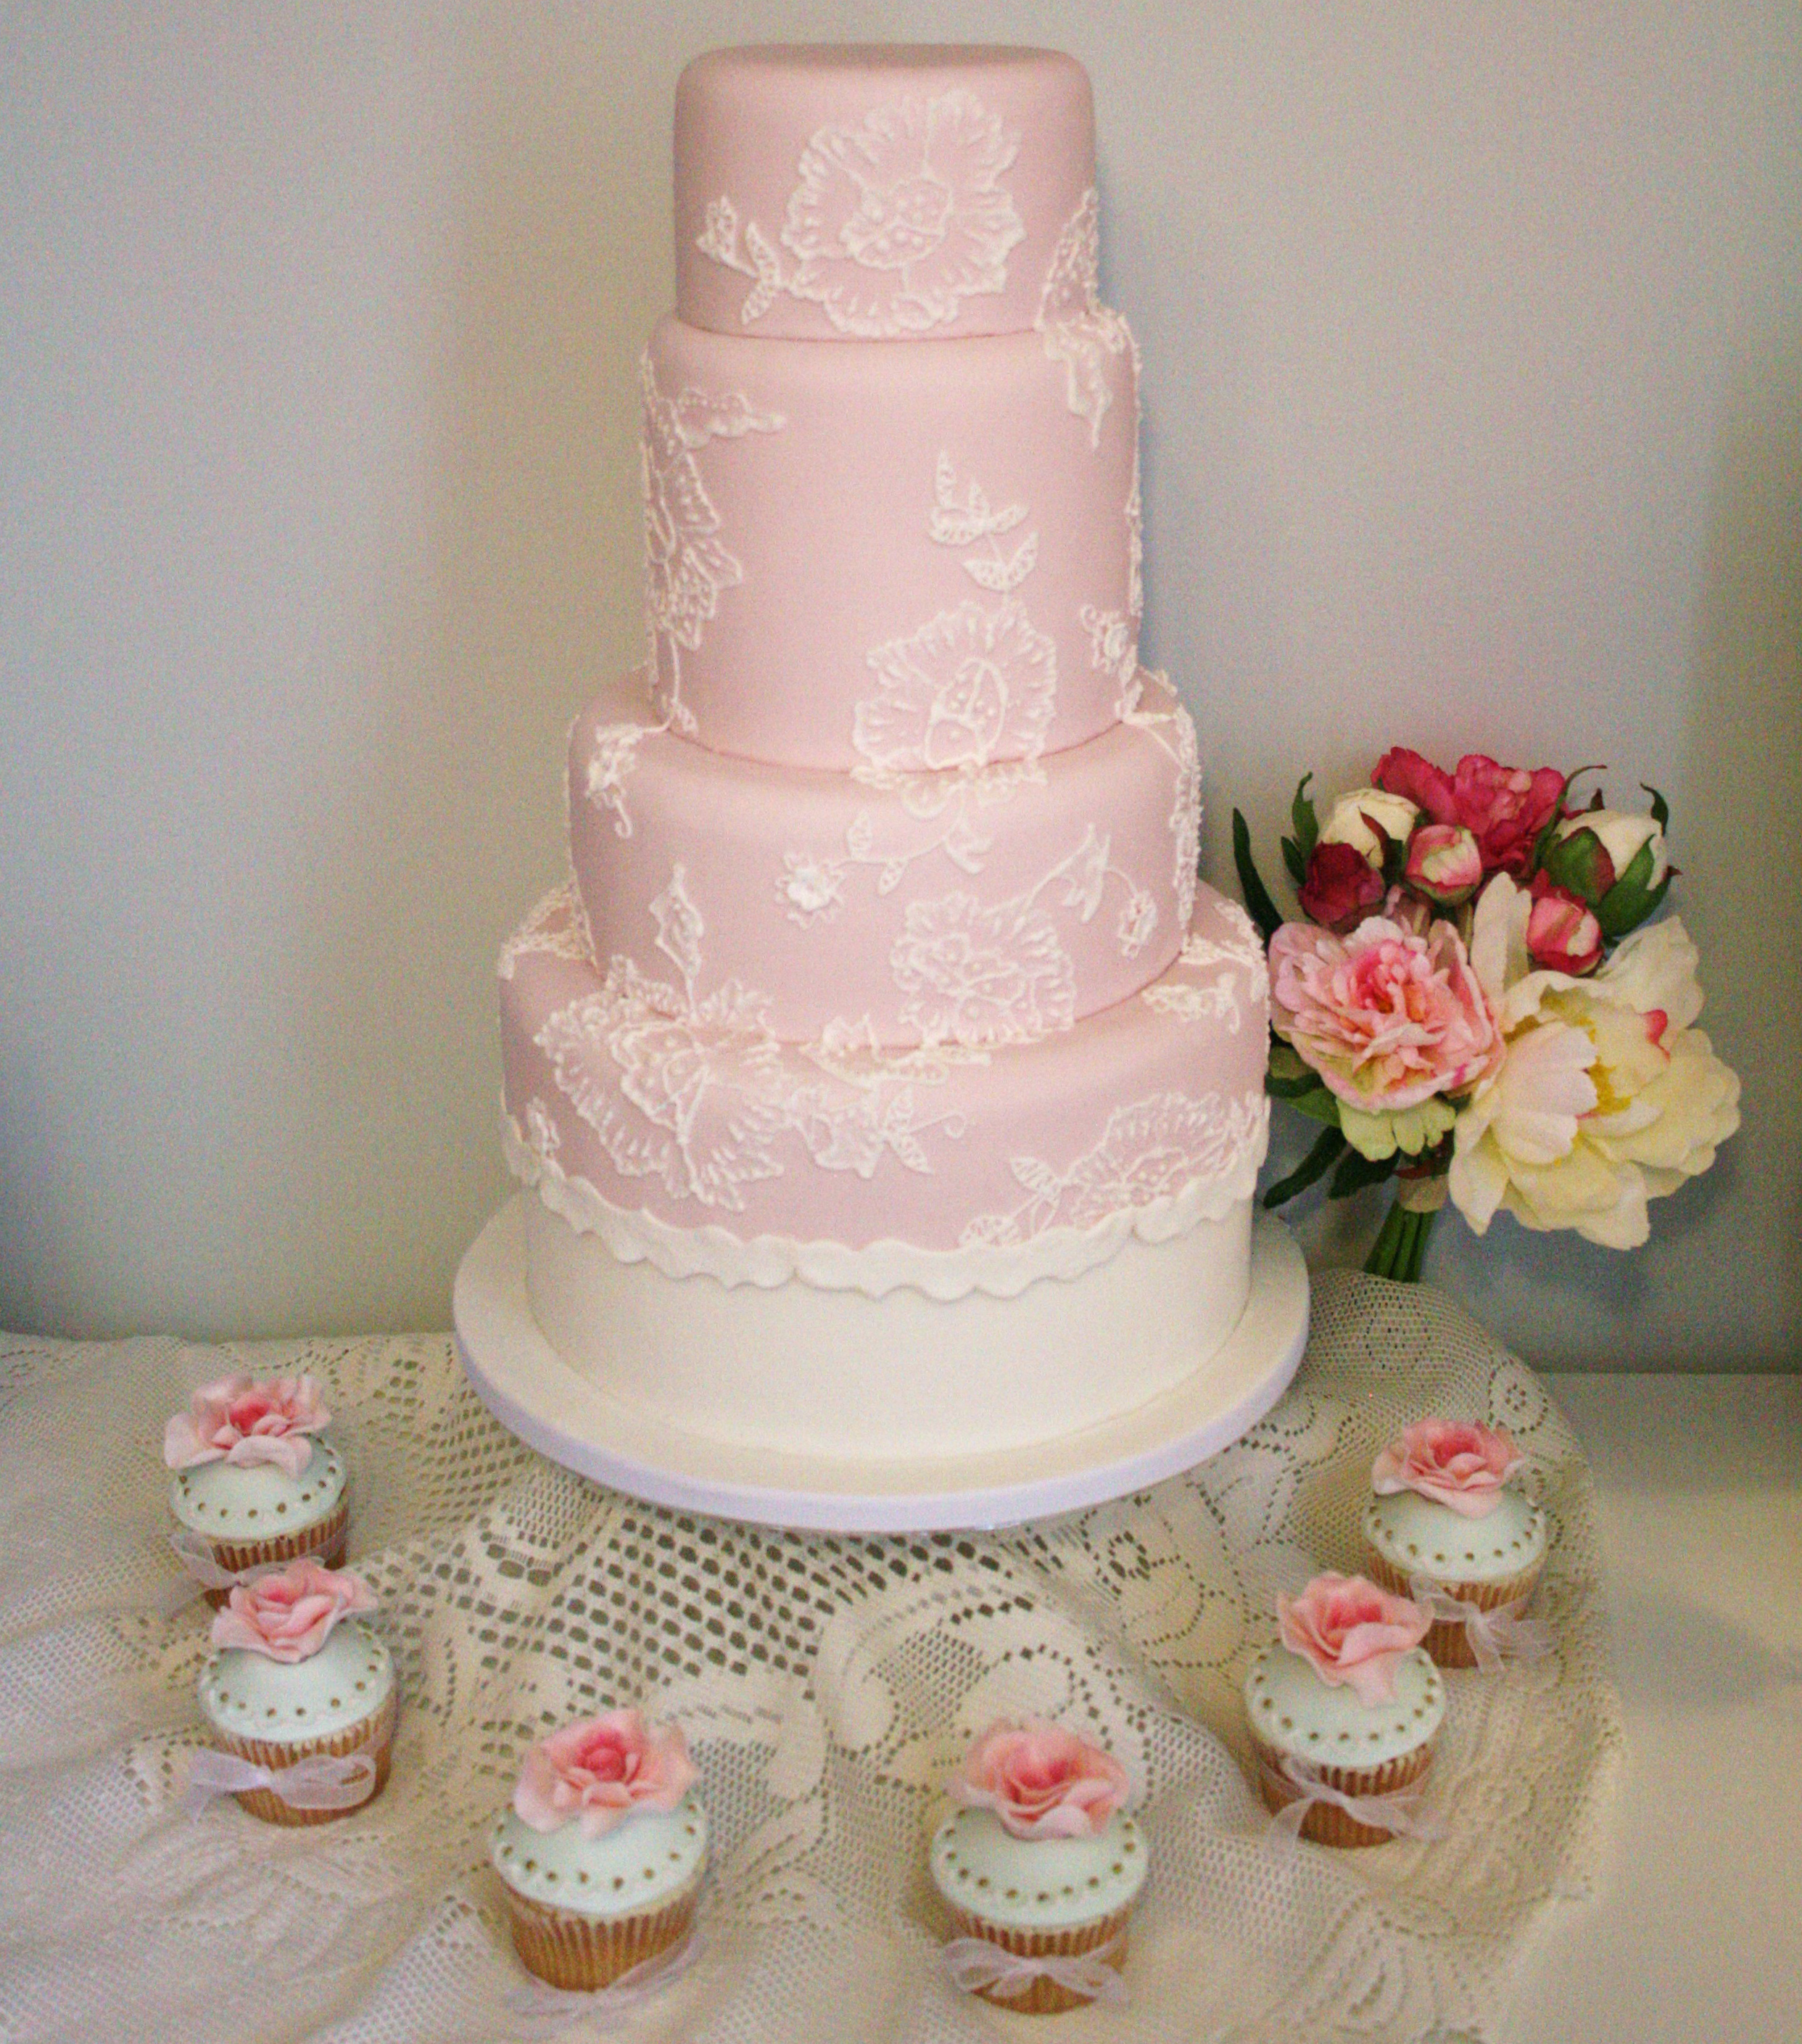 Pink Lace Cake and Rose Cupcakes